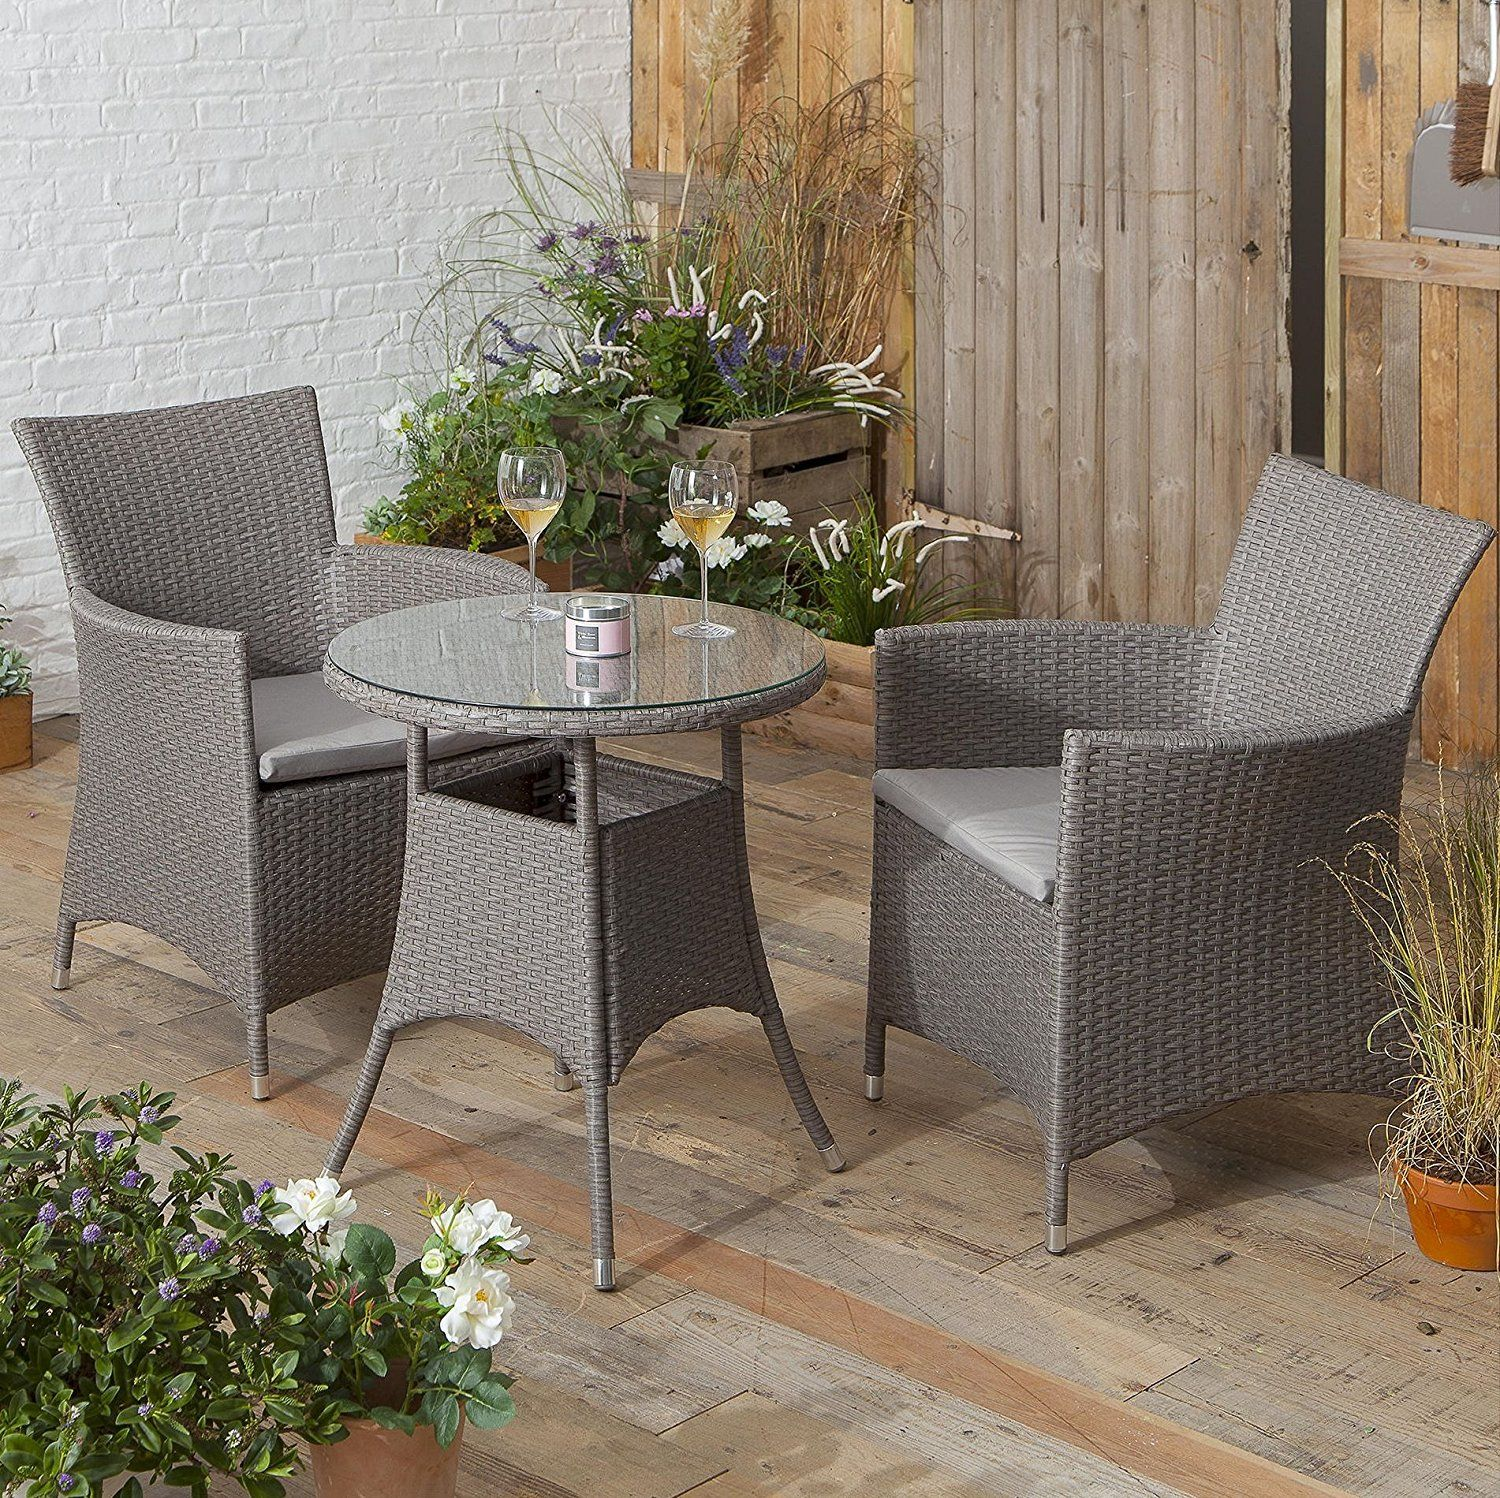 2 Chairs And Table Rattan How To Paint Kitchen Great Value Stylish Style Bistro Set Garden Patio With Grey Amazon Co Uk Home